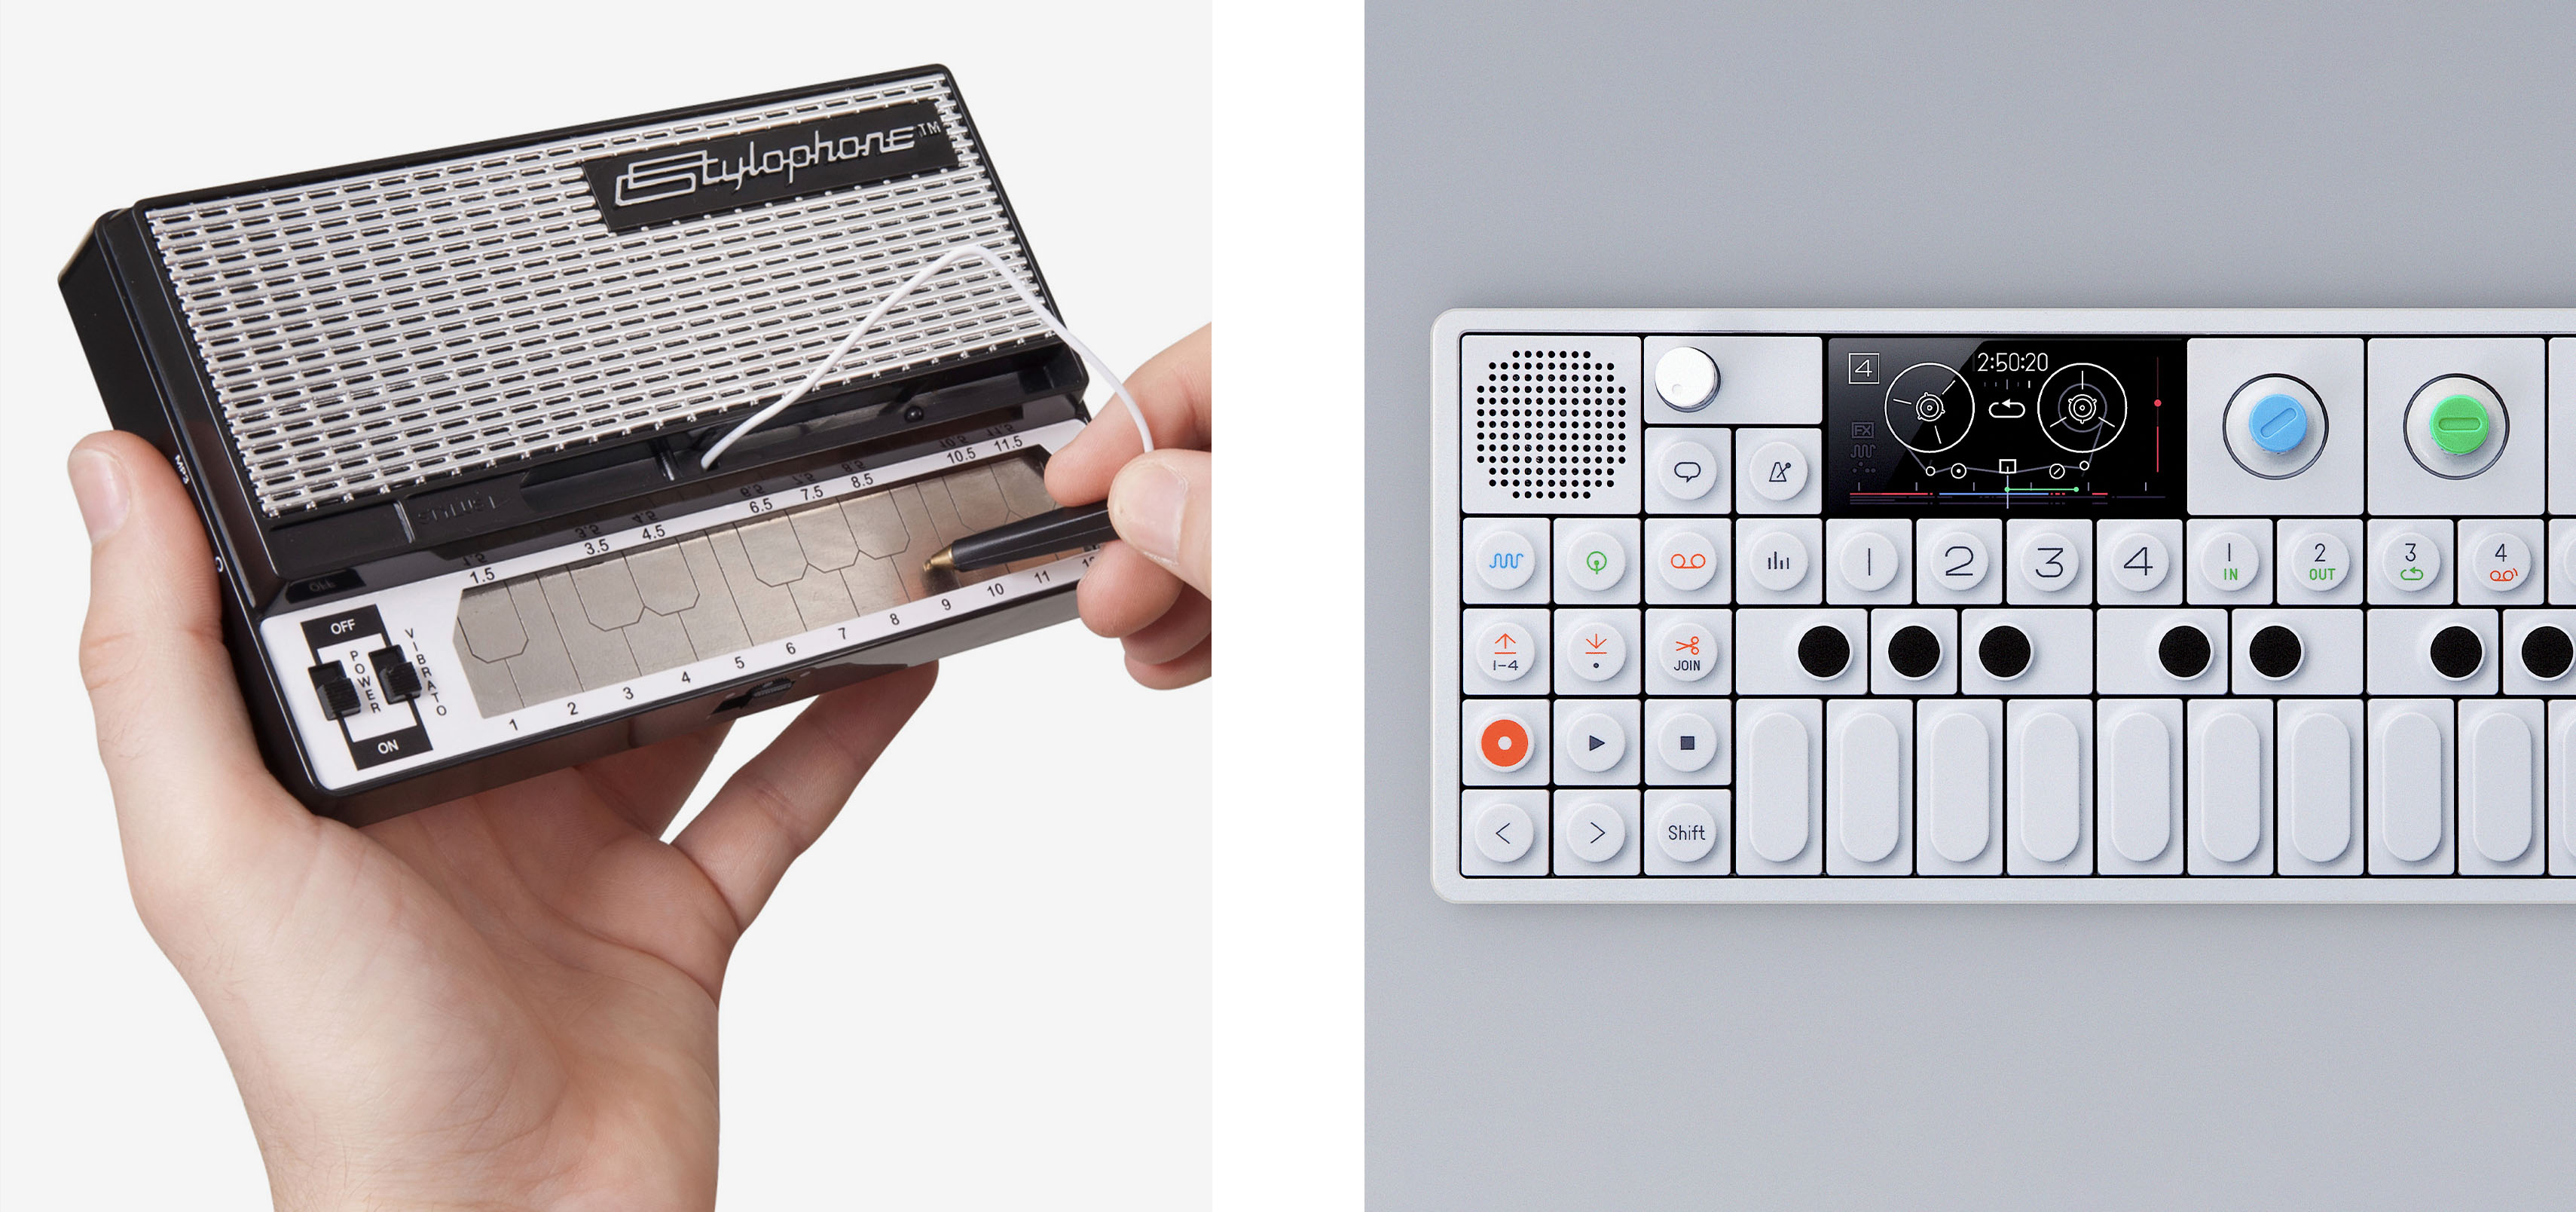 The stylophone, harkening back to last newsletter's Royal Digital, and a modern OP-1